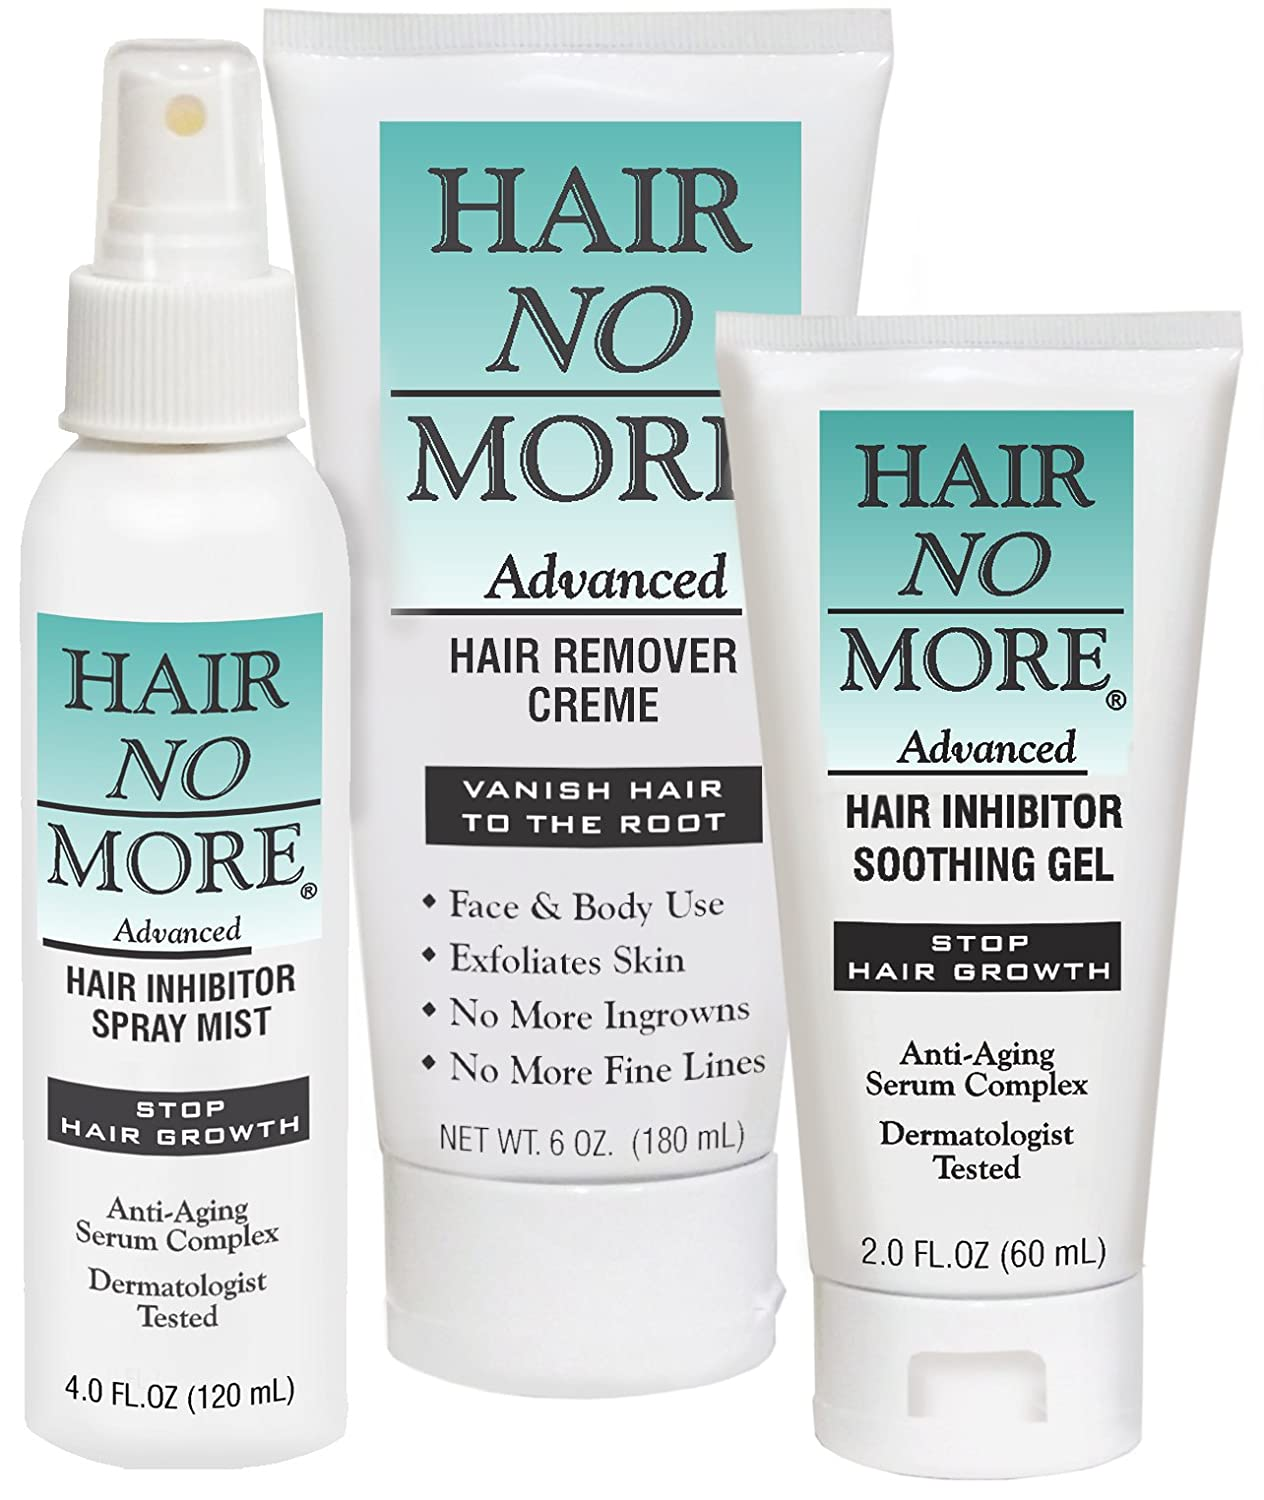 HAIR NO MORE ADAVANCED HAIR REMOVAL SYSTEM ULTRA HAIR REMOVER KIT HAIR AWAY FOREVER by Hair No More